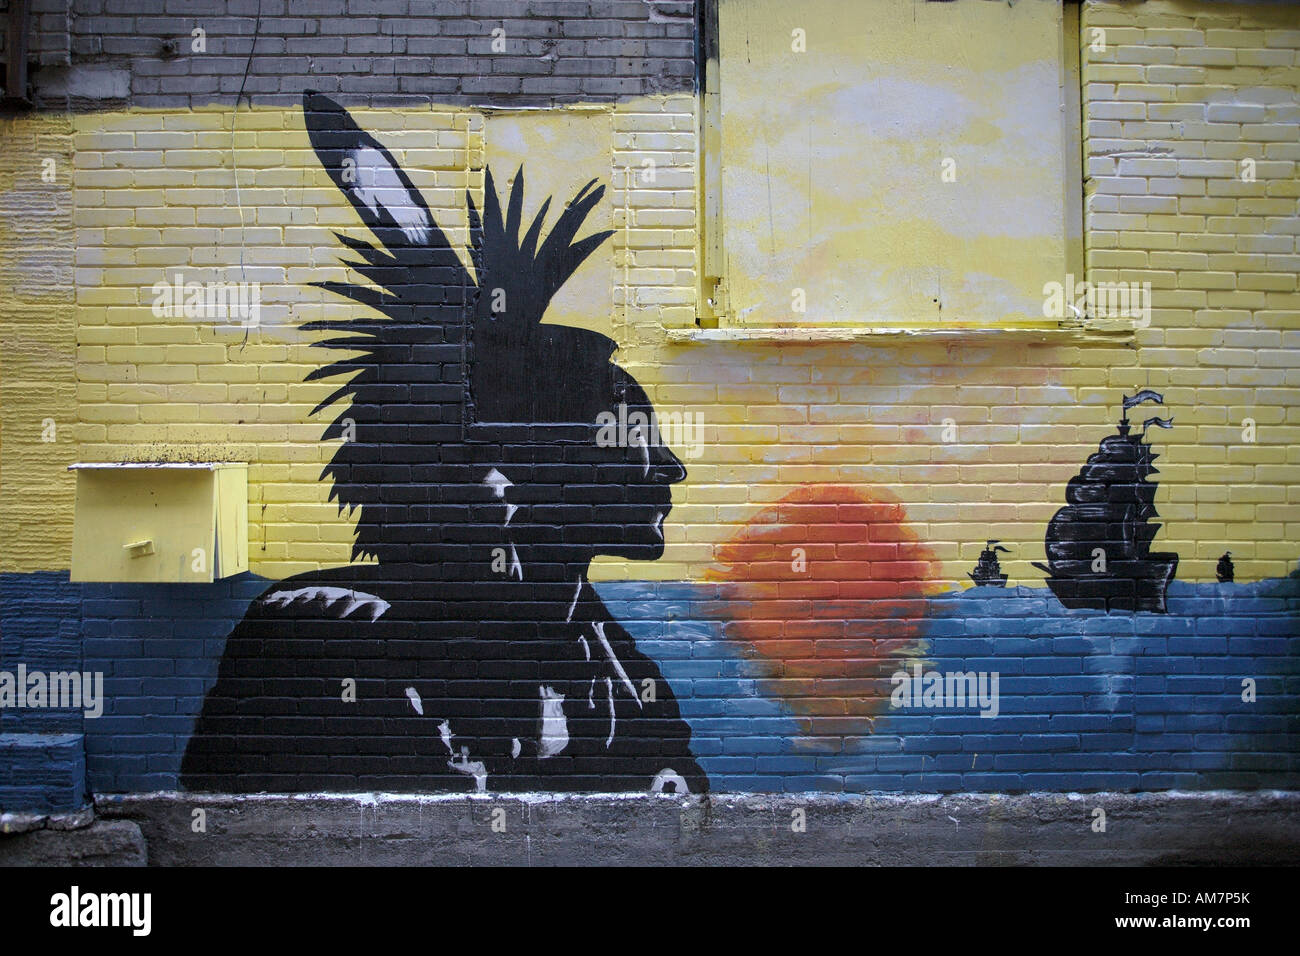 Graffiti Of American Indian And Sailing Ships Le Village Montreal Quebec Canada